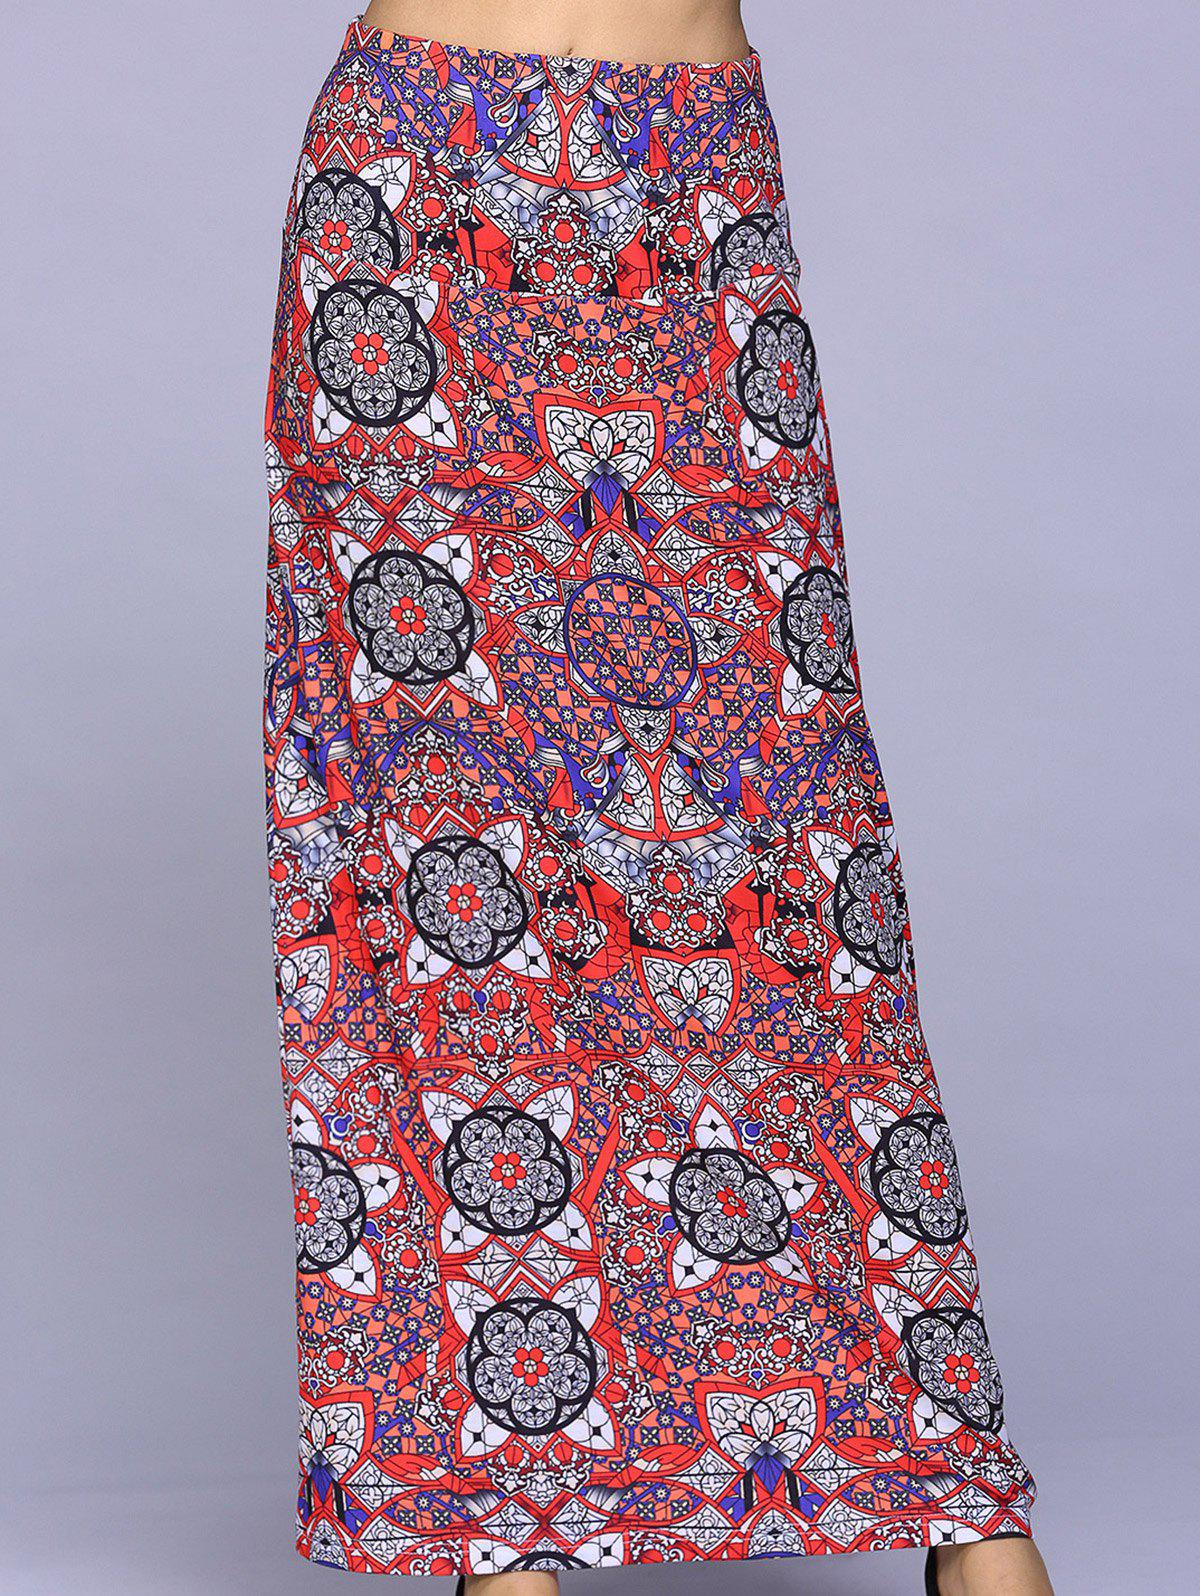 Leisure Women's Straight Geometric Printing Long Skirt - COLORFUL GEOMETRIC L